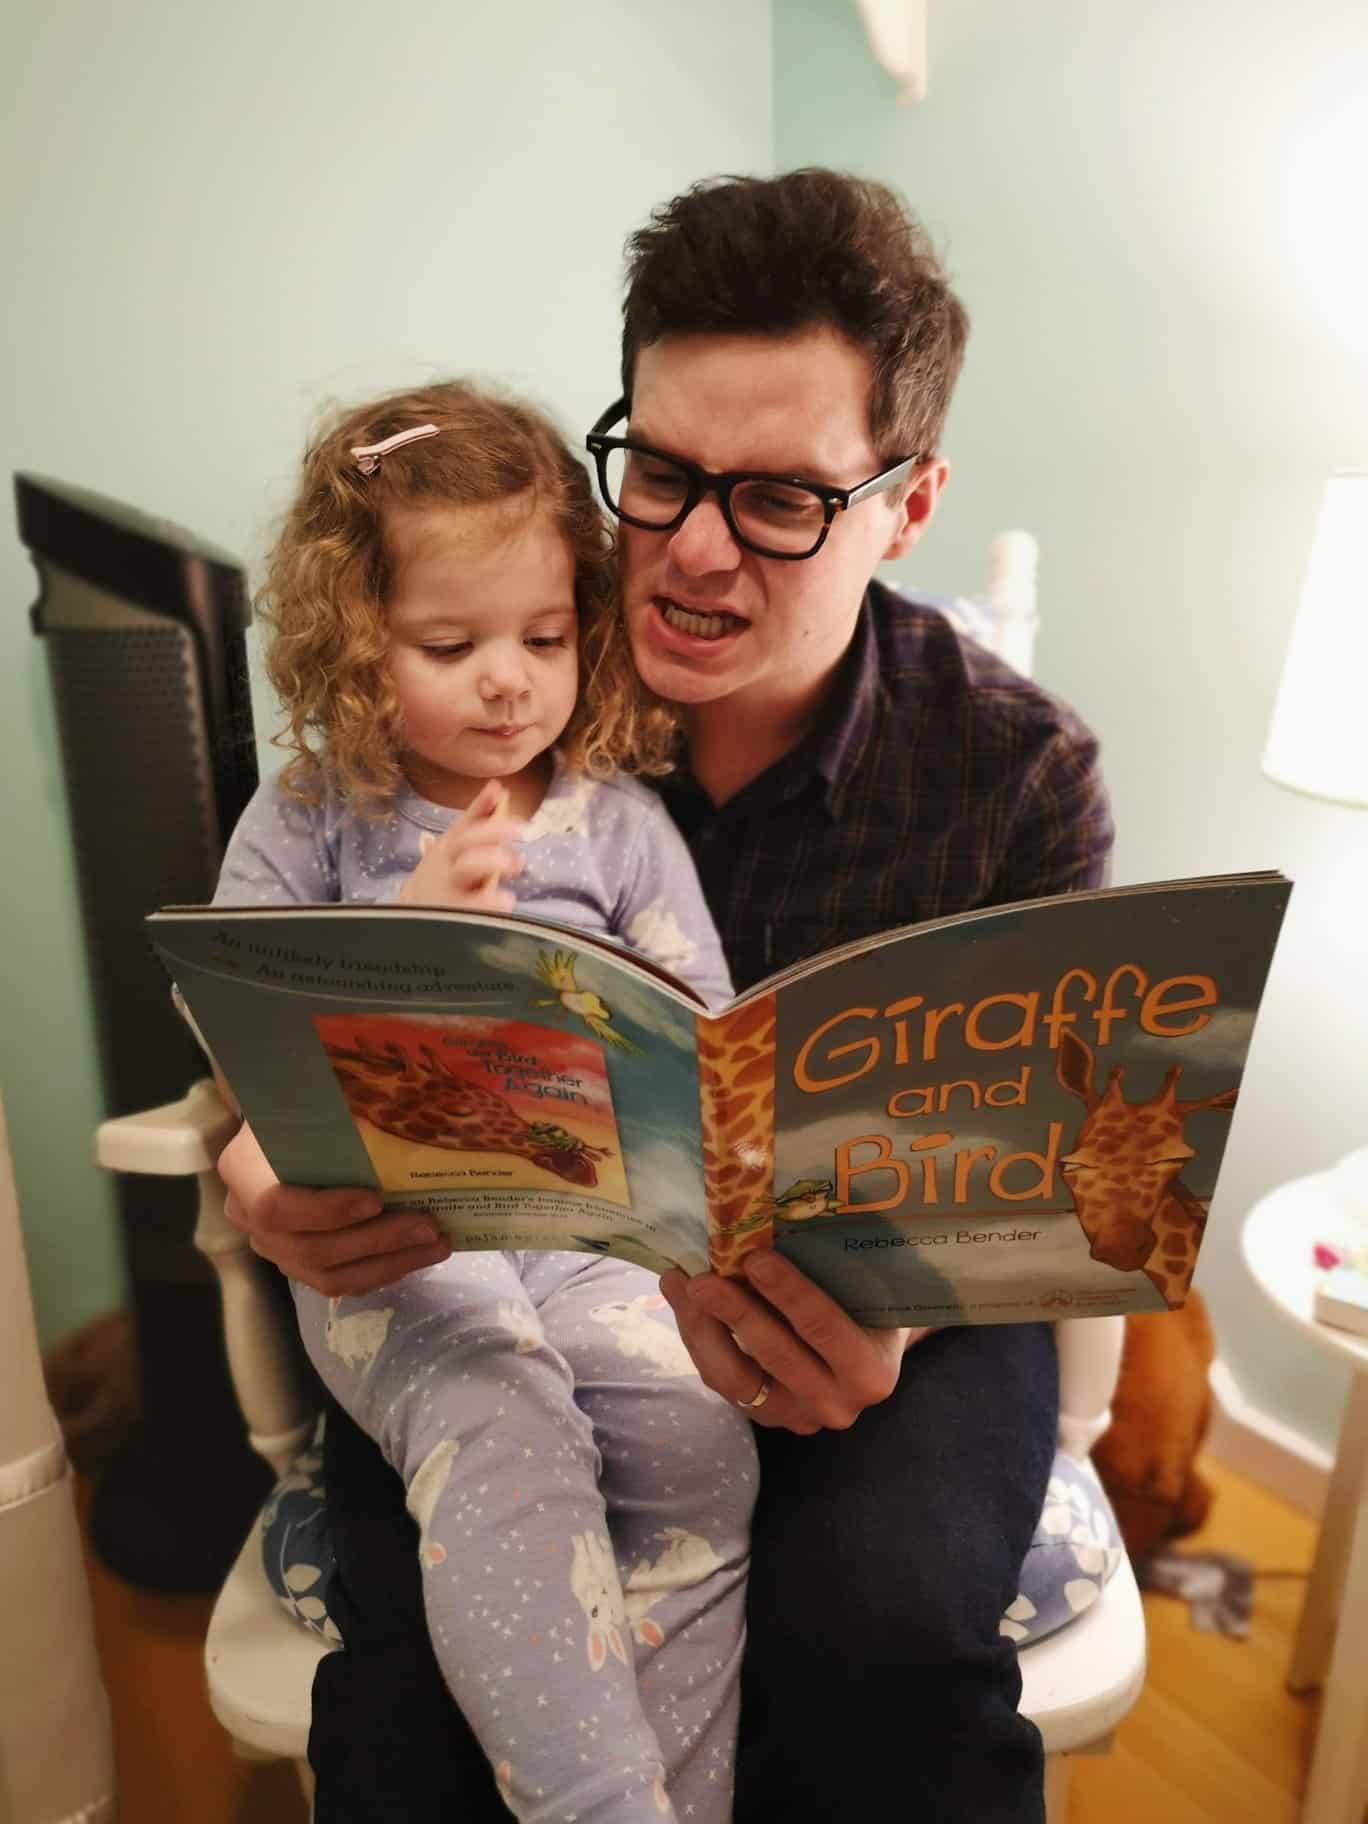 James R.C Smith reading a book with his daughter